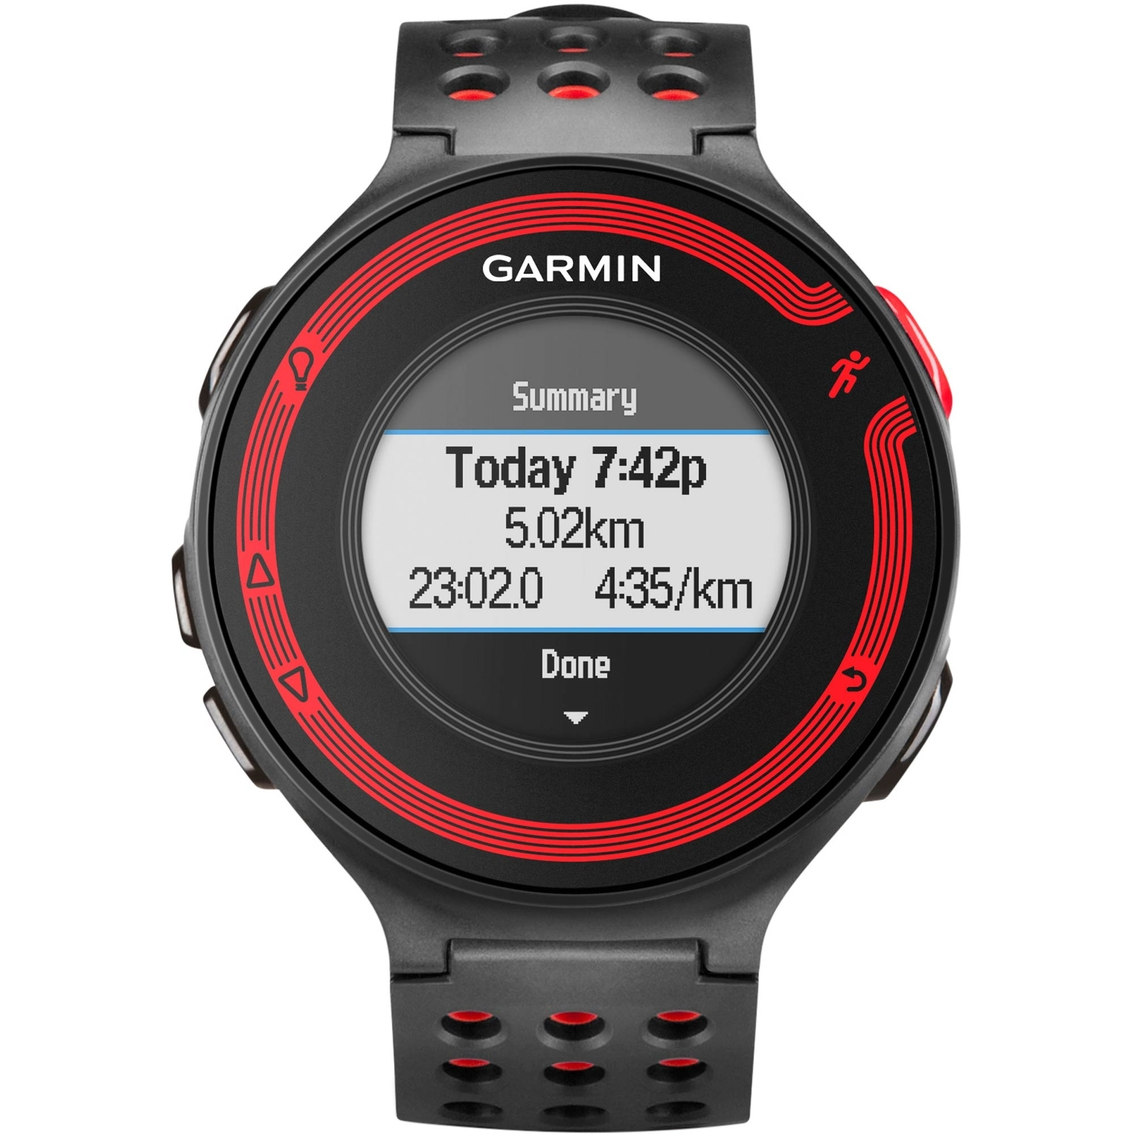 Garmin forerunner 220 gps sports watch with heart rate monitor fitness gps watches beauty for Watches garmin